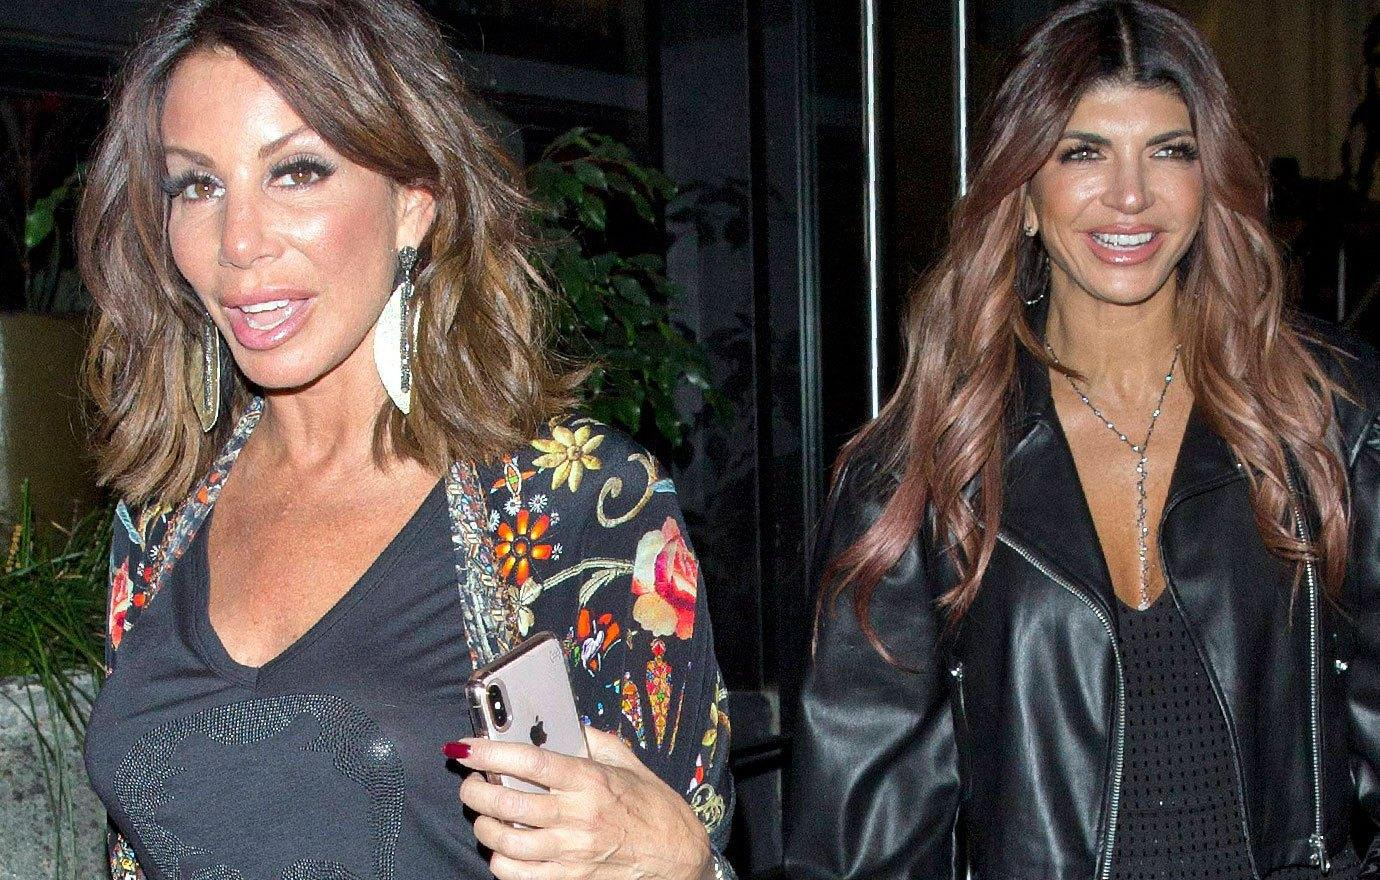 'RHONJ' Cast Members Reportedly 'Begging' For Danielle Staub To Get Fired Following Her Fallout With Teresa Giudice